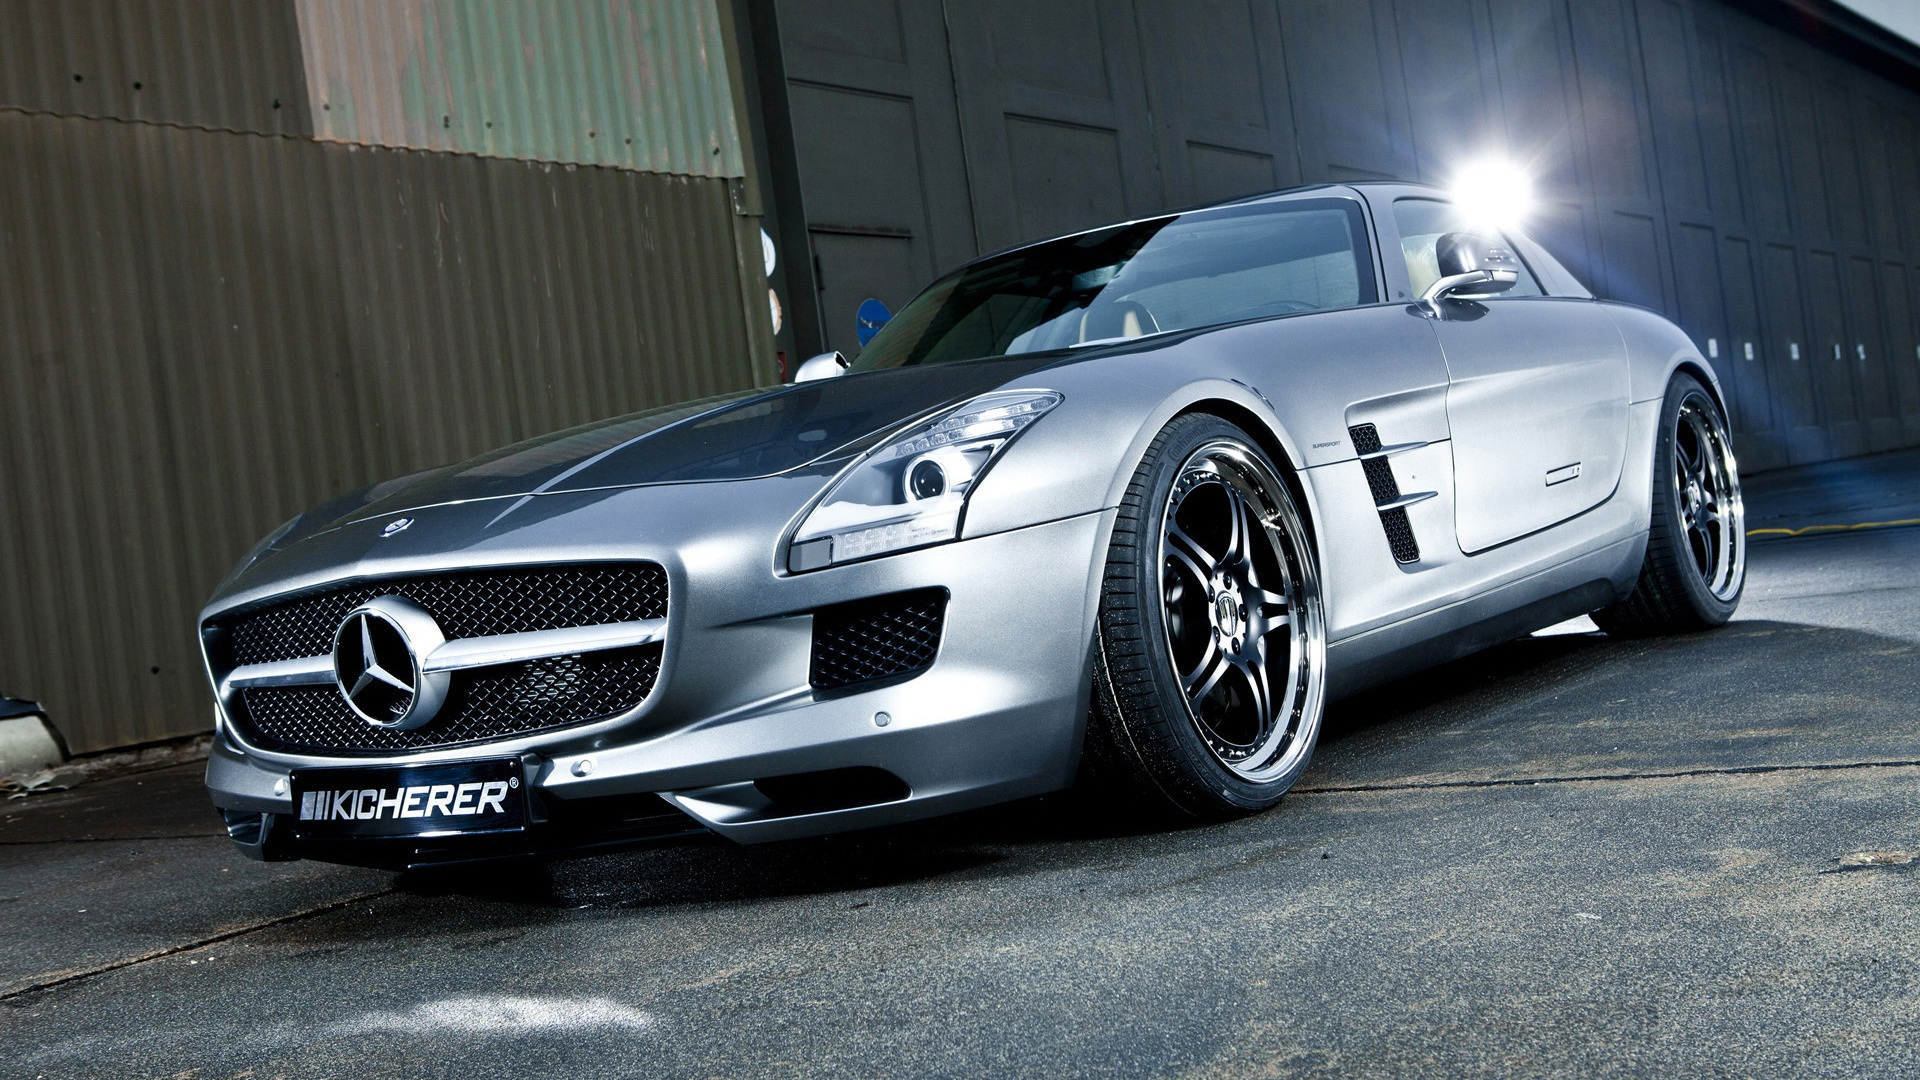 Mercedes Benz sls 63 1080p-Wallpapers